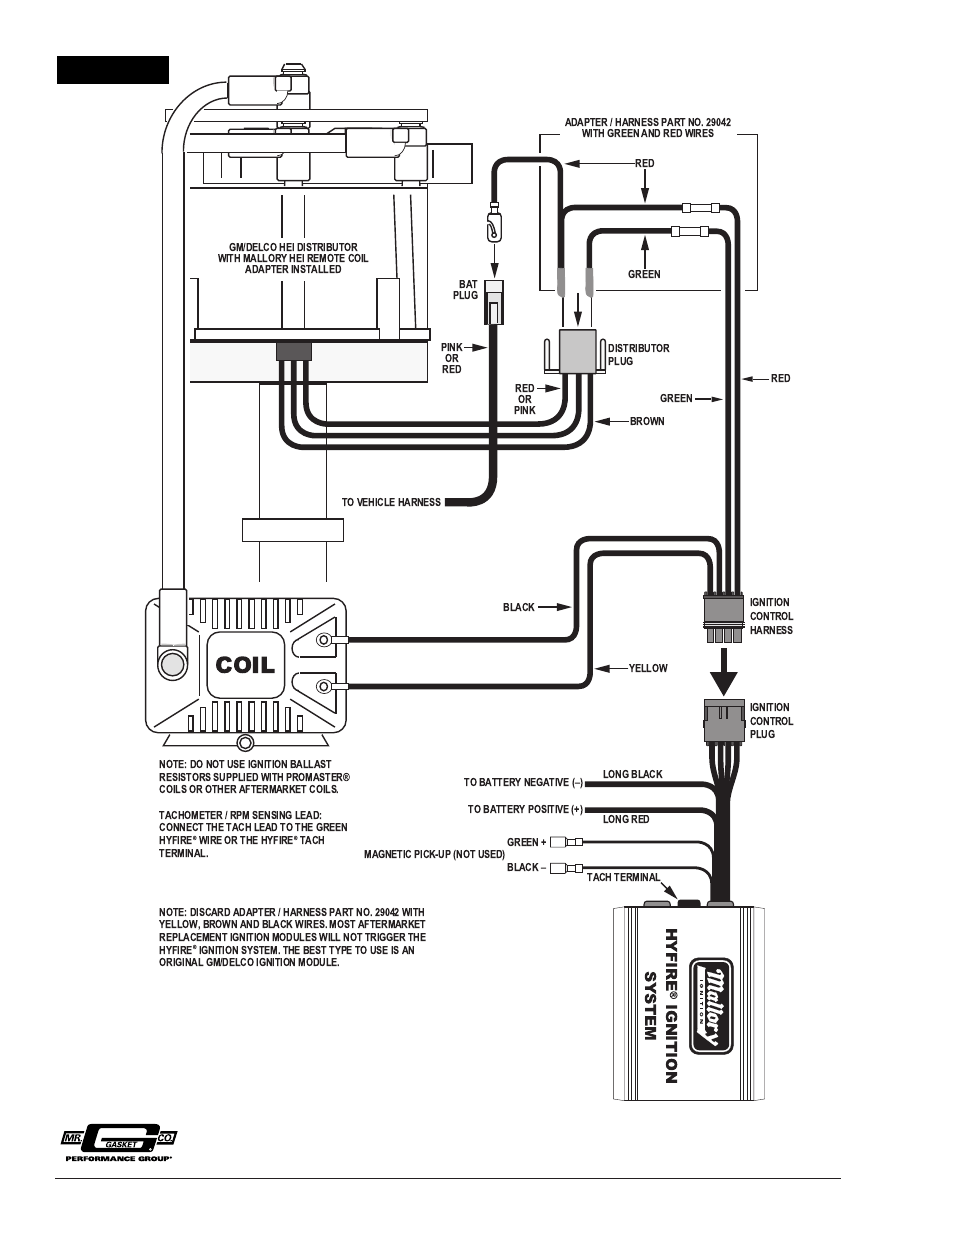 stunning hei ignition wiring diagram images images for image Hei Wiring Diagram best mallory ignition wiring  sc 1 st  jdmop.com : delco remy distributor wiring - yogabreezes.com